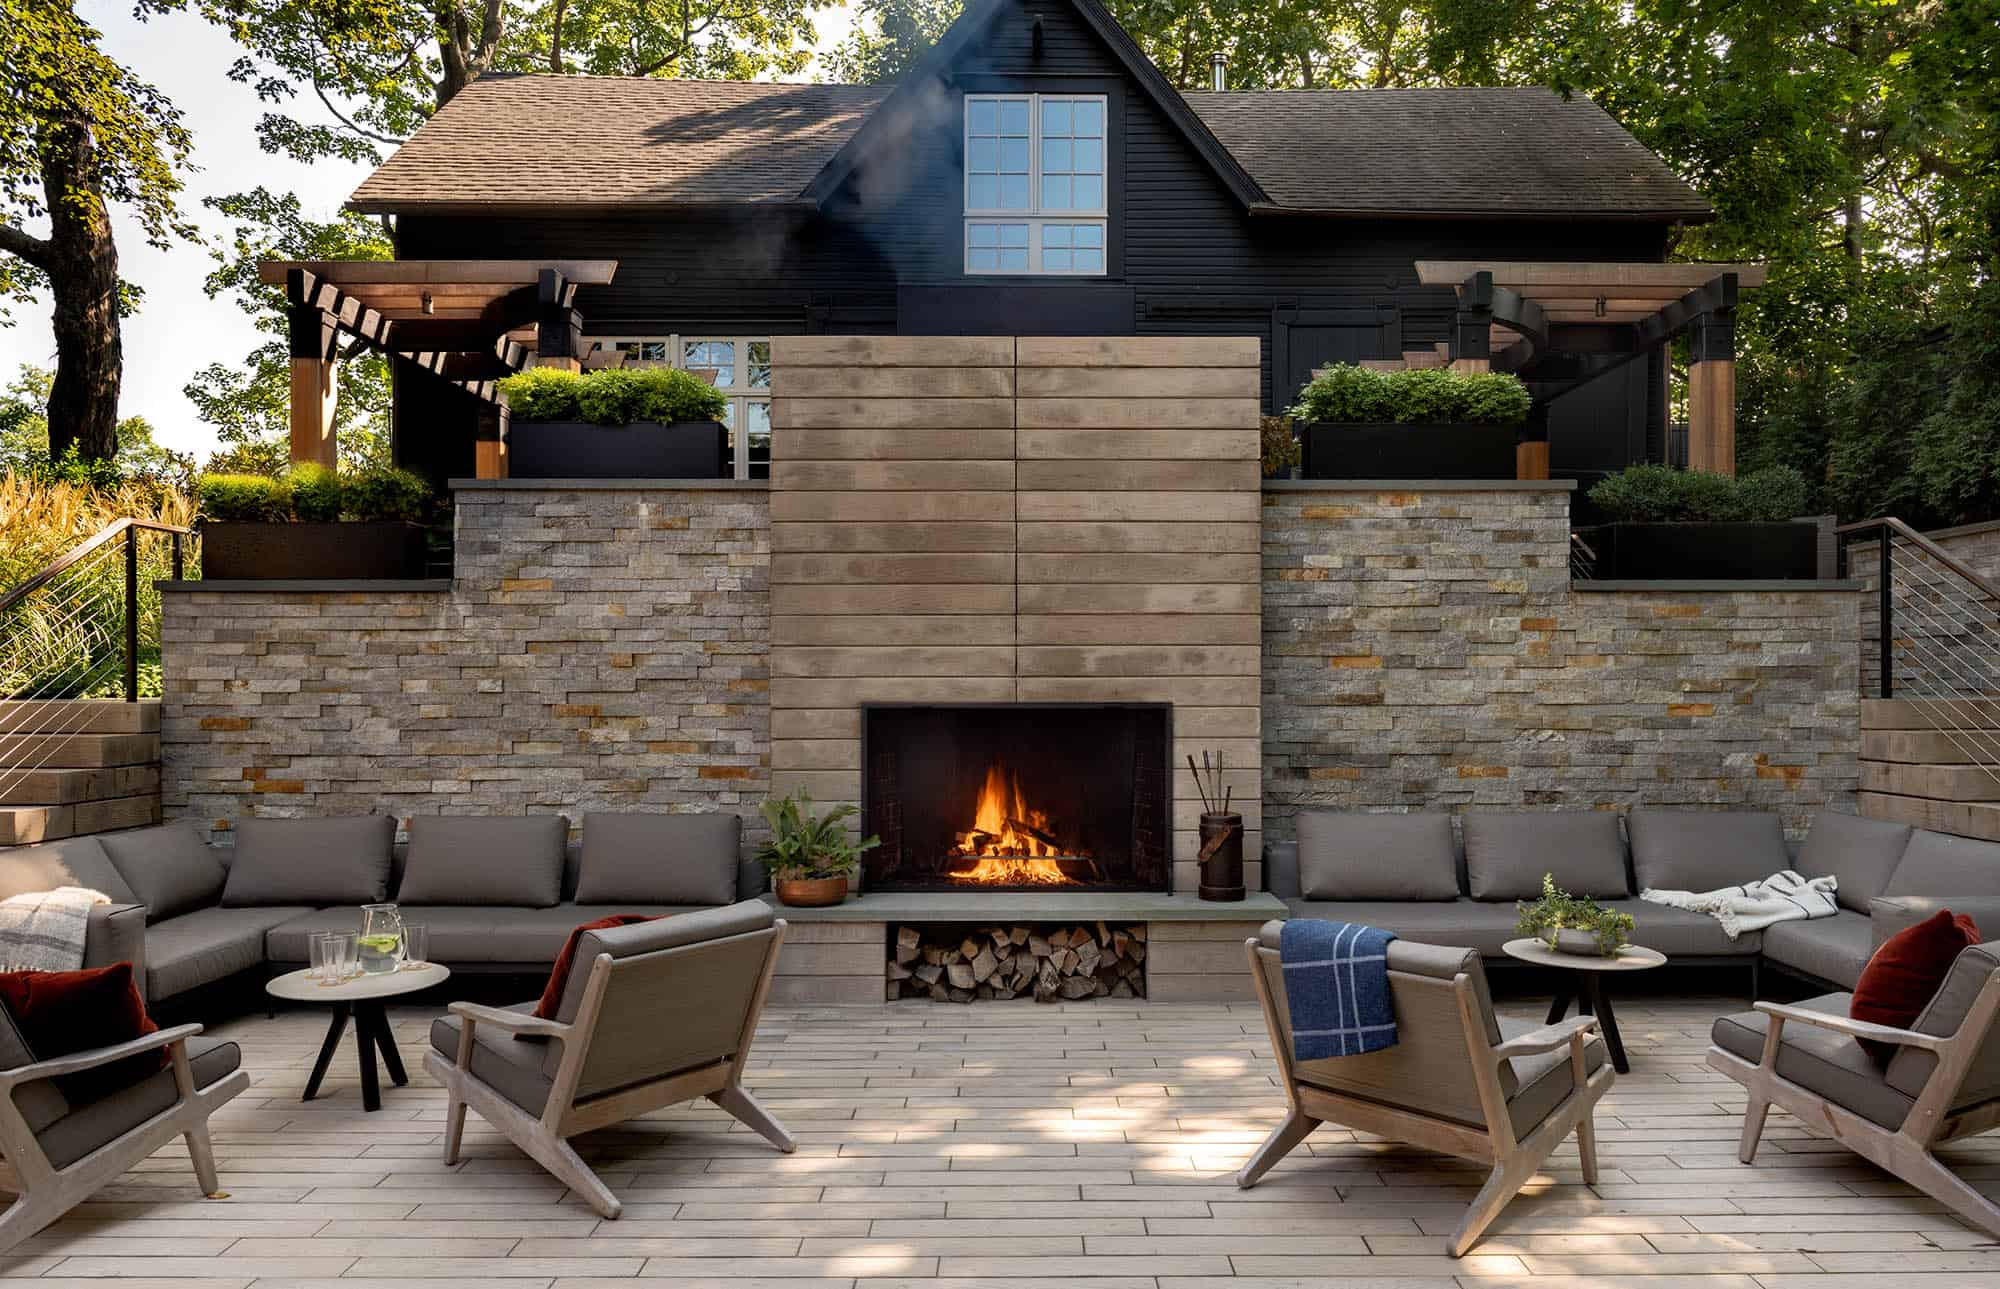 Patio with Fireplace-Conte and Conte Landscape architects